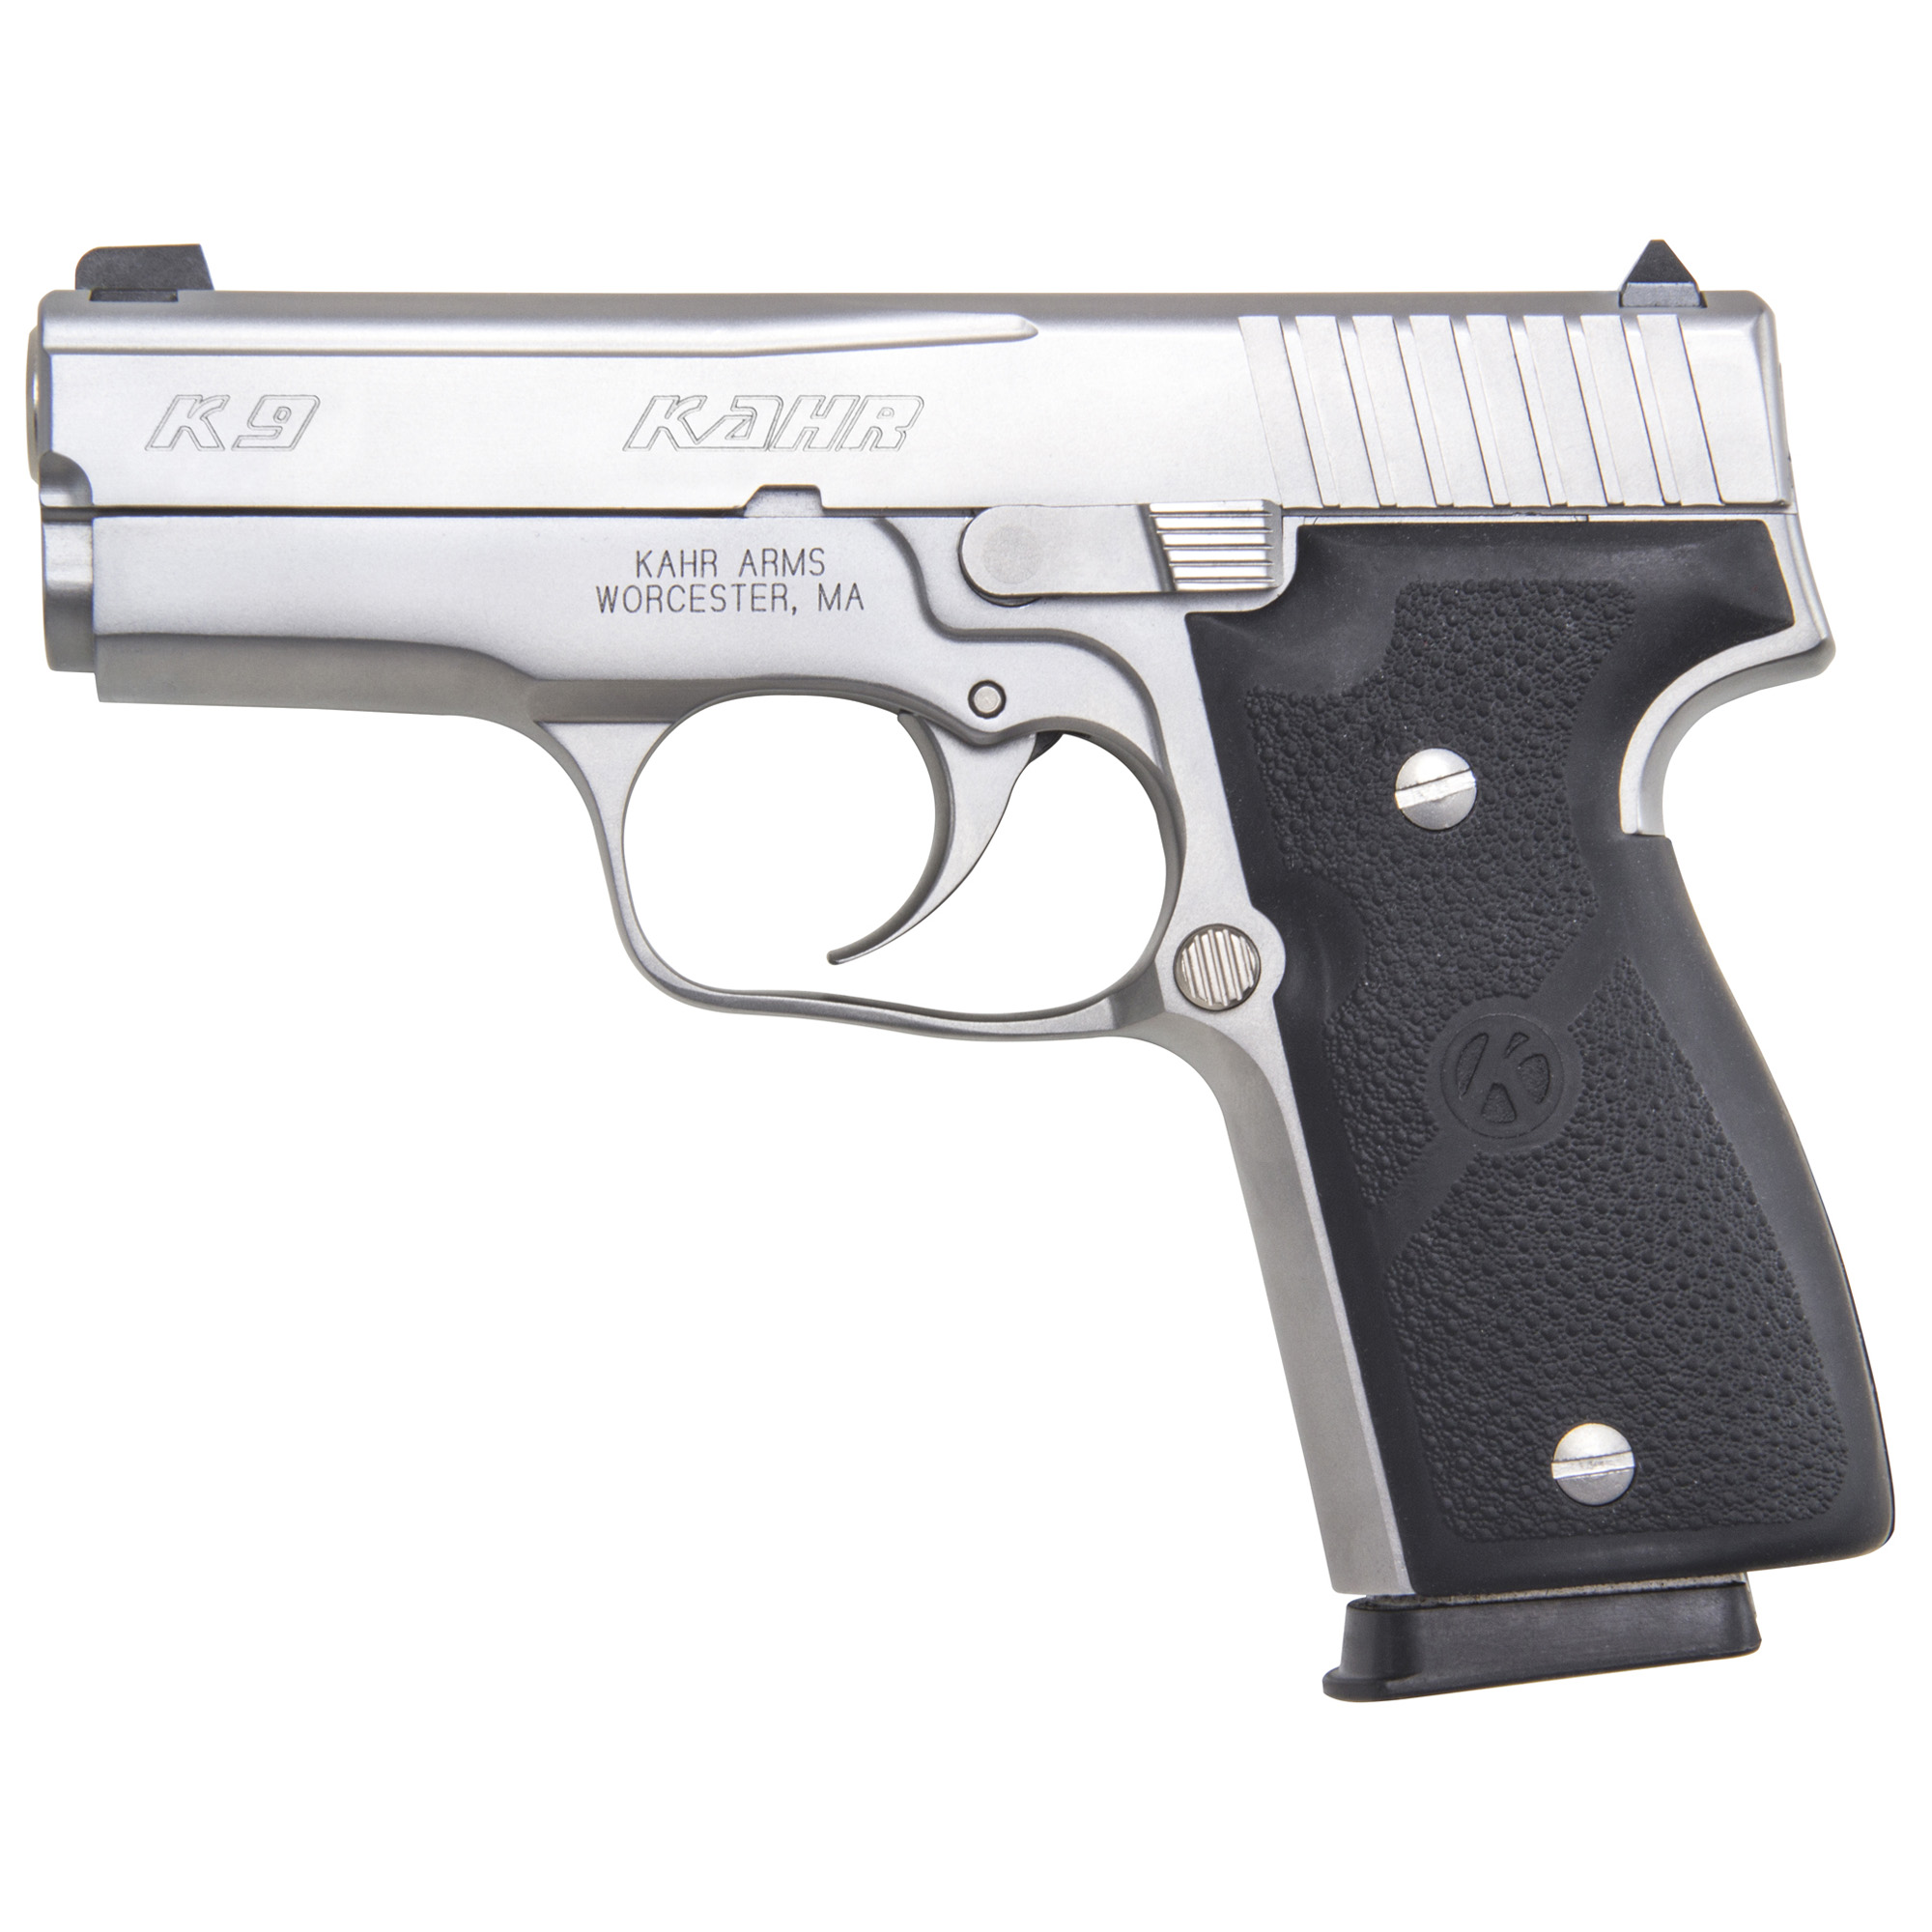 """The K Series steel 9mm was the first design rolled out of the factory in 1995"""" and the line of concealed carry handguns has continued to grow ever since. Kahr Arms offers the best concealed carry/back-up gun on the market by offering high quality and total reliability in a lightweight package."""